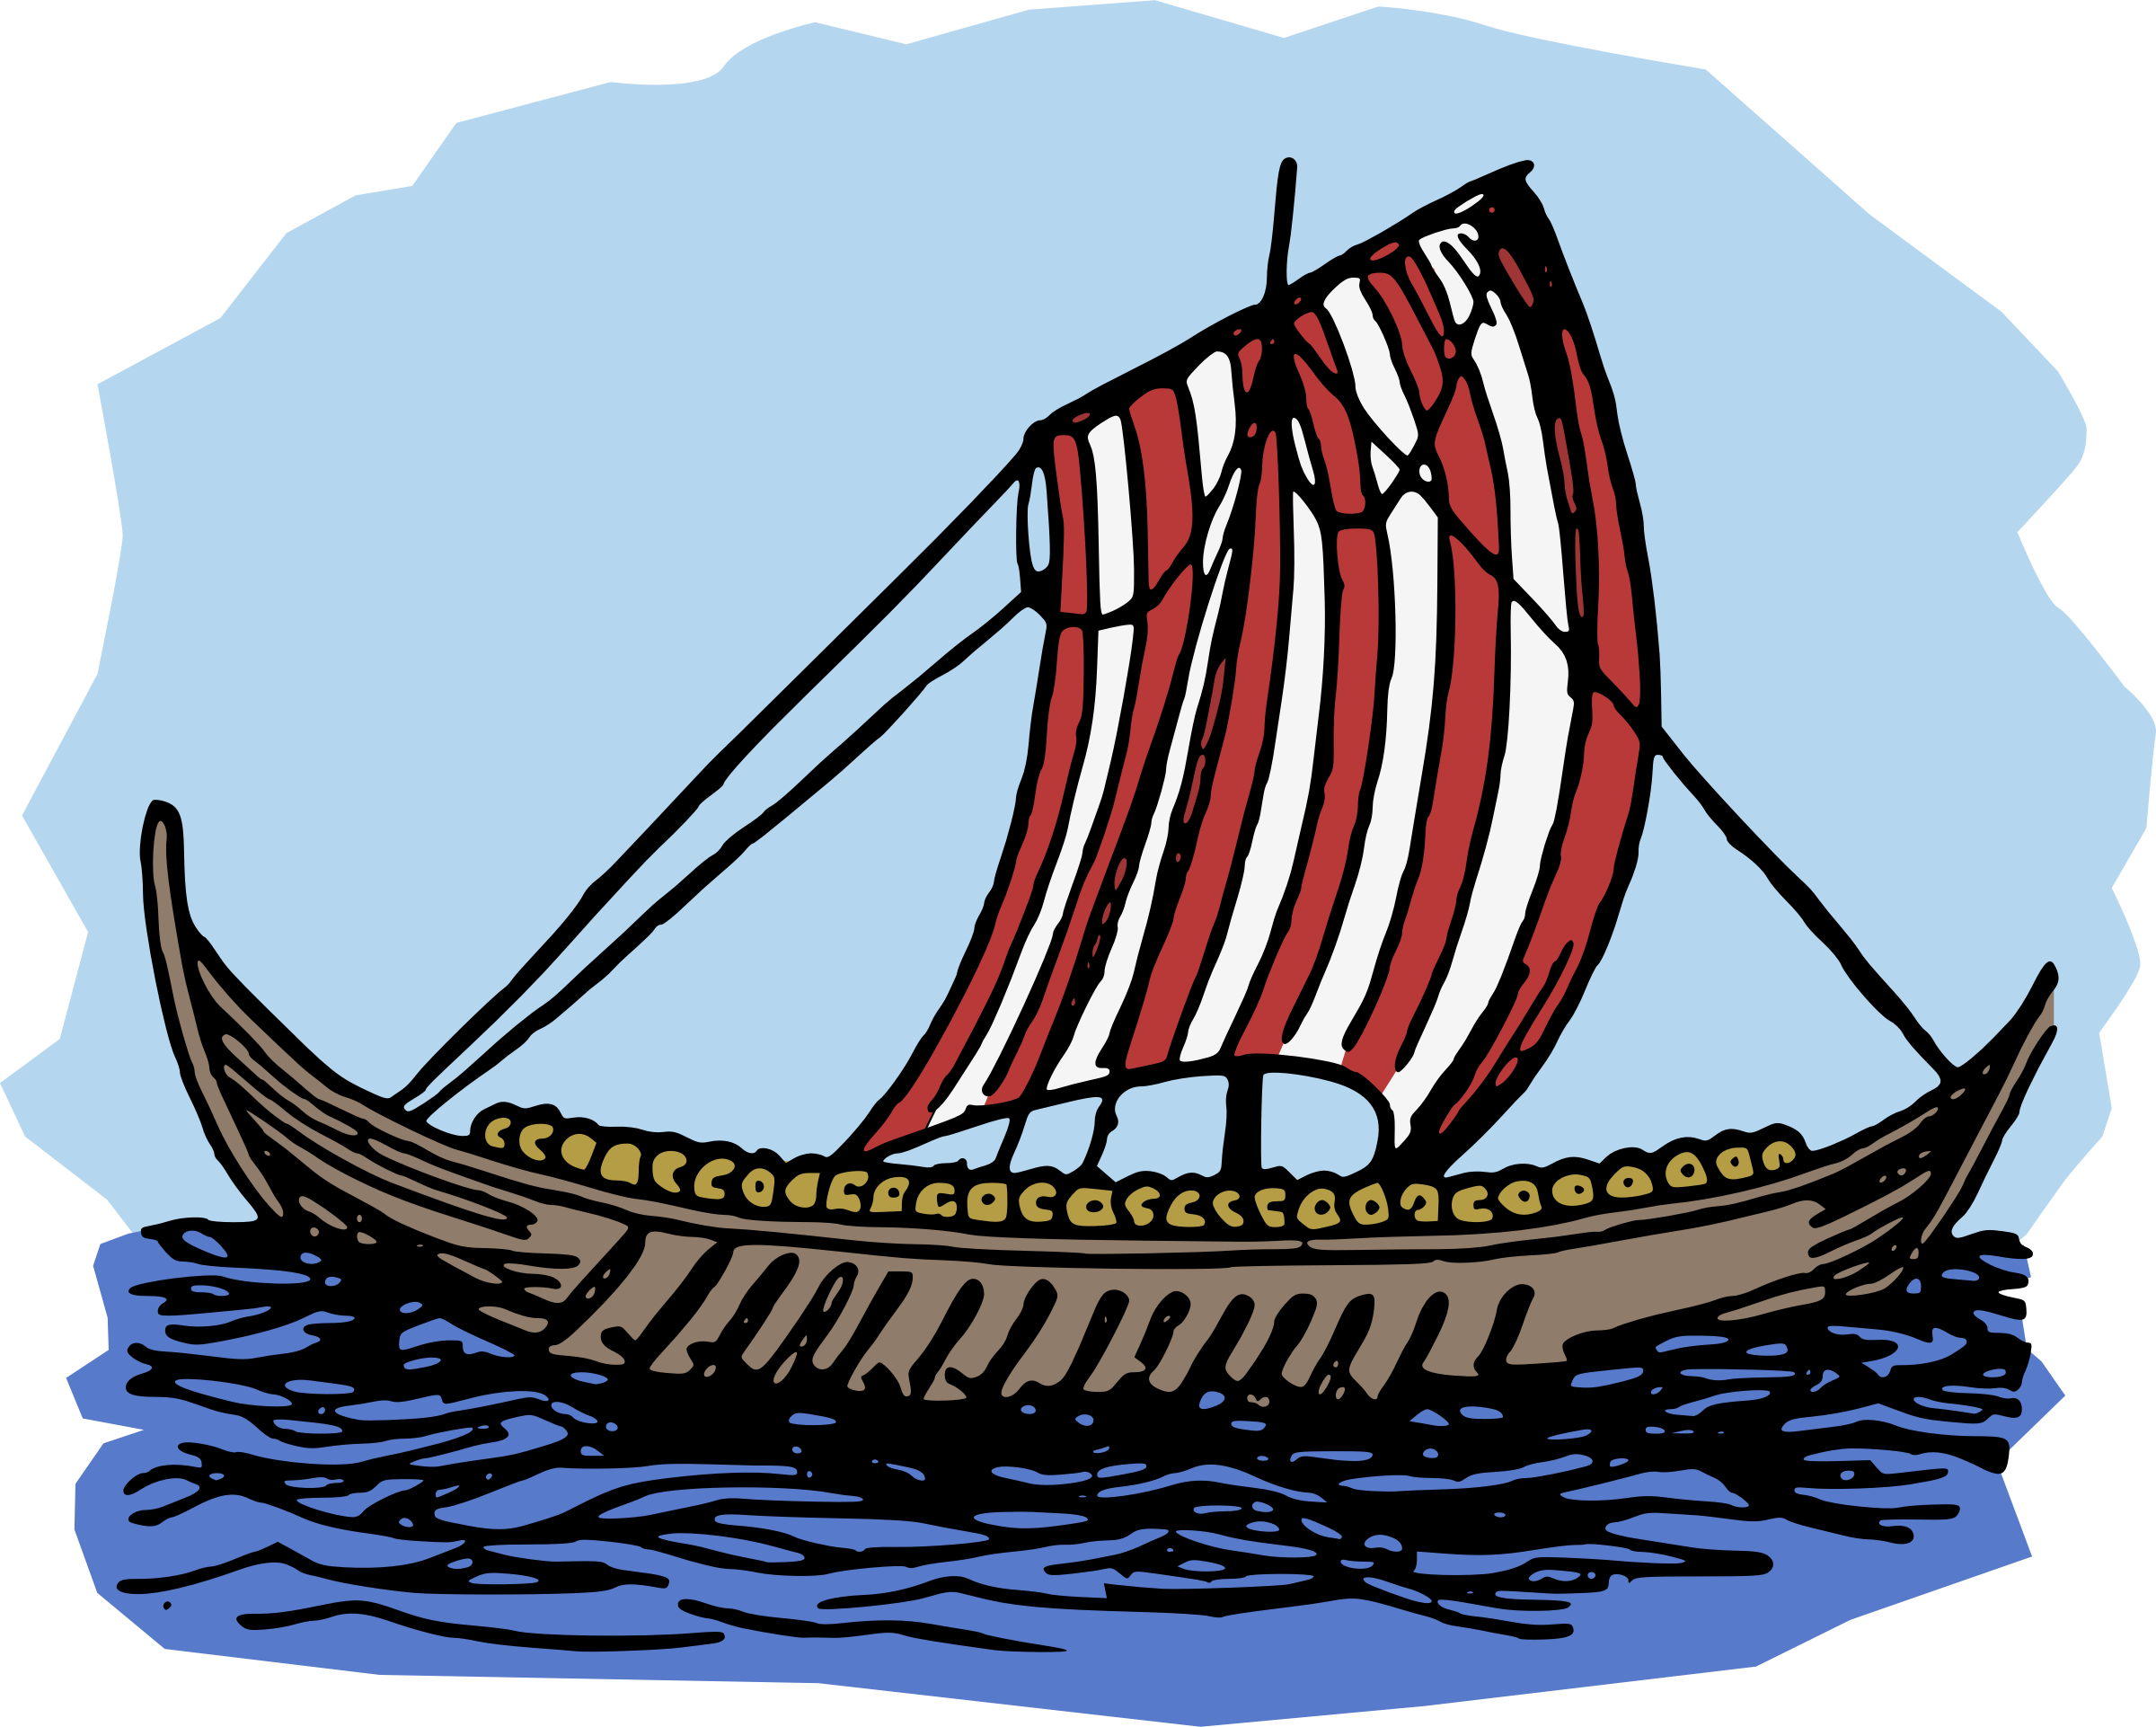 Viking Boat - Colour by j4p4n